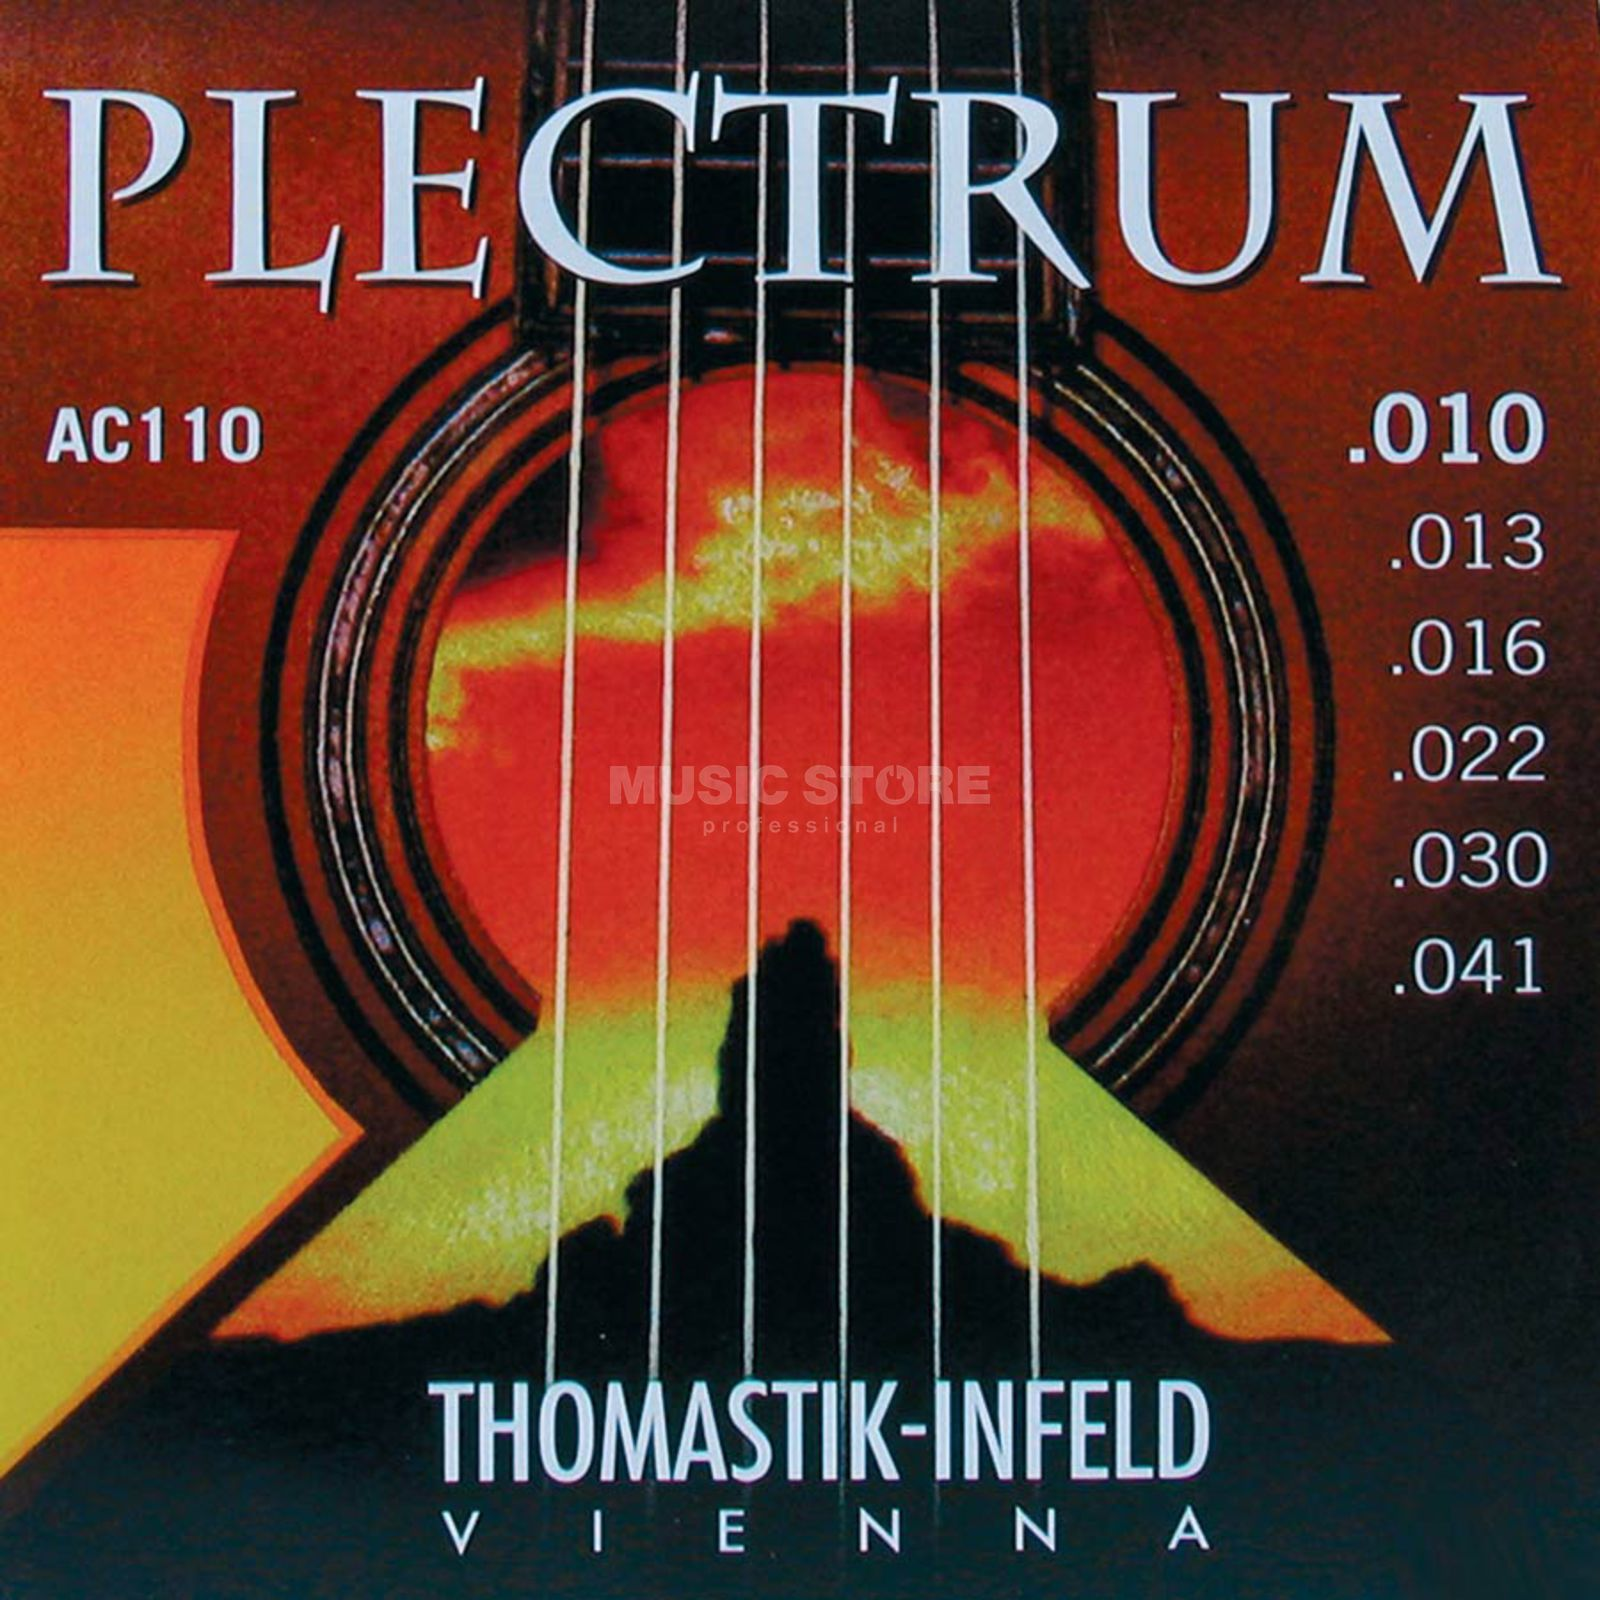 Thomastik AC 110 A-Saiten 10-41 Plectrum extra light Produktbild